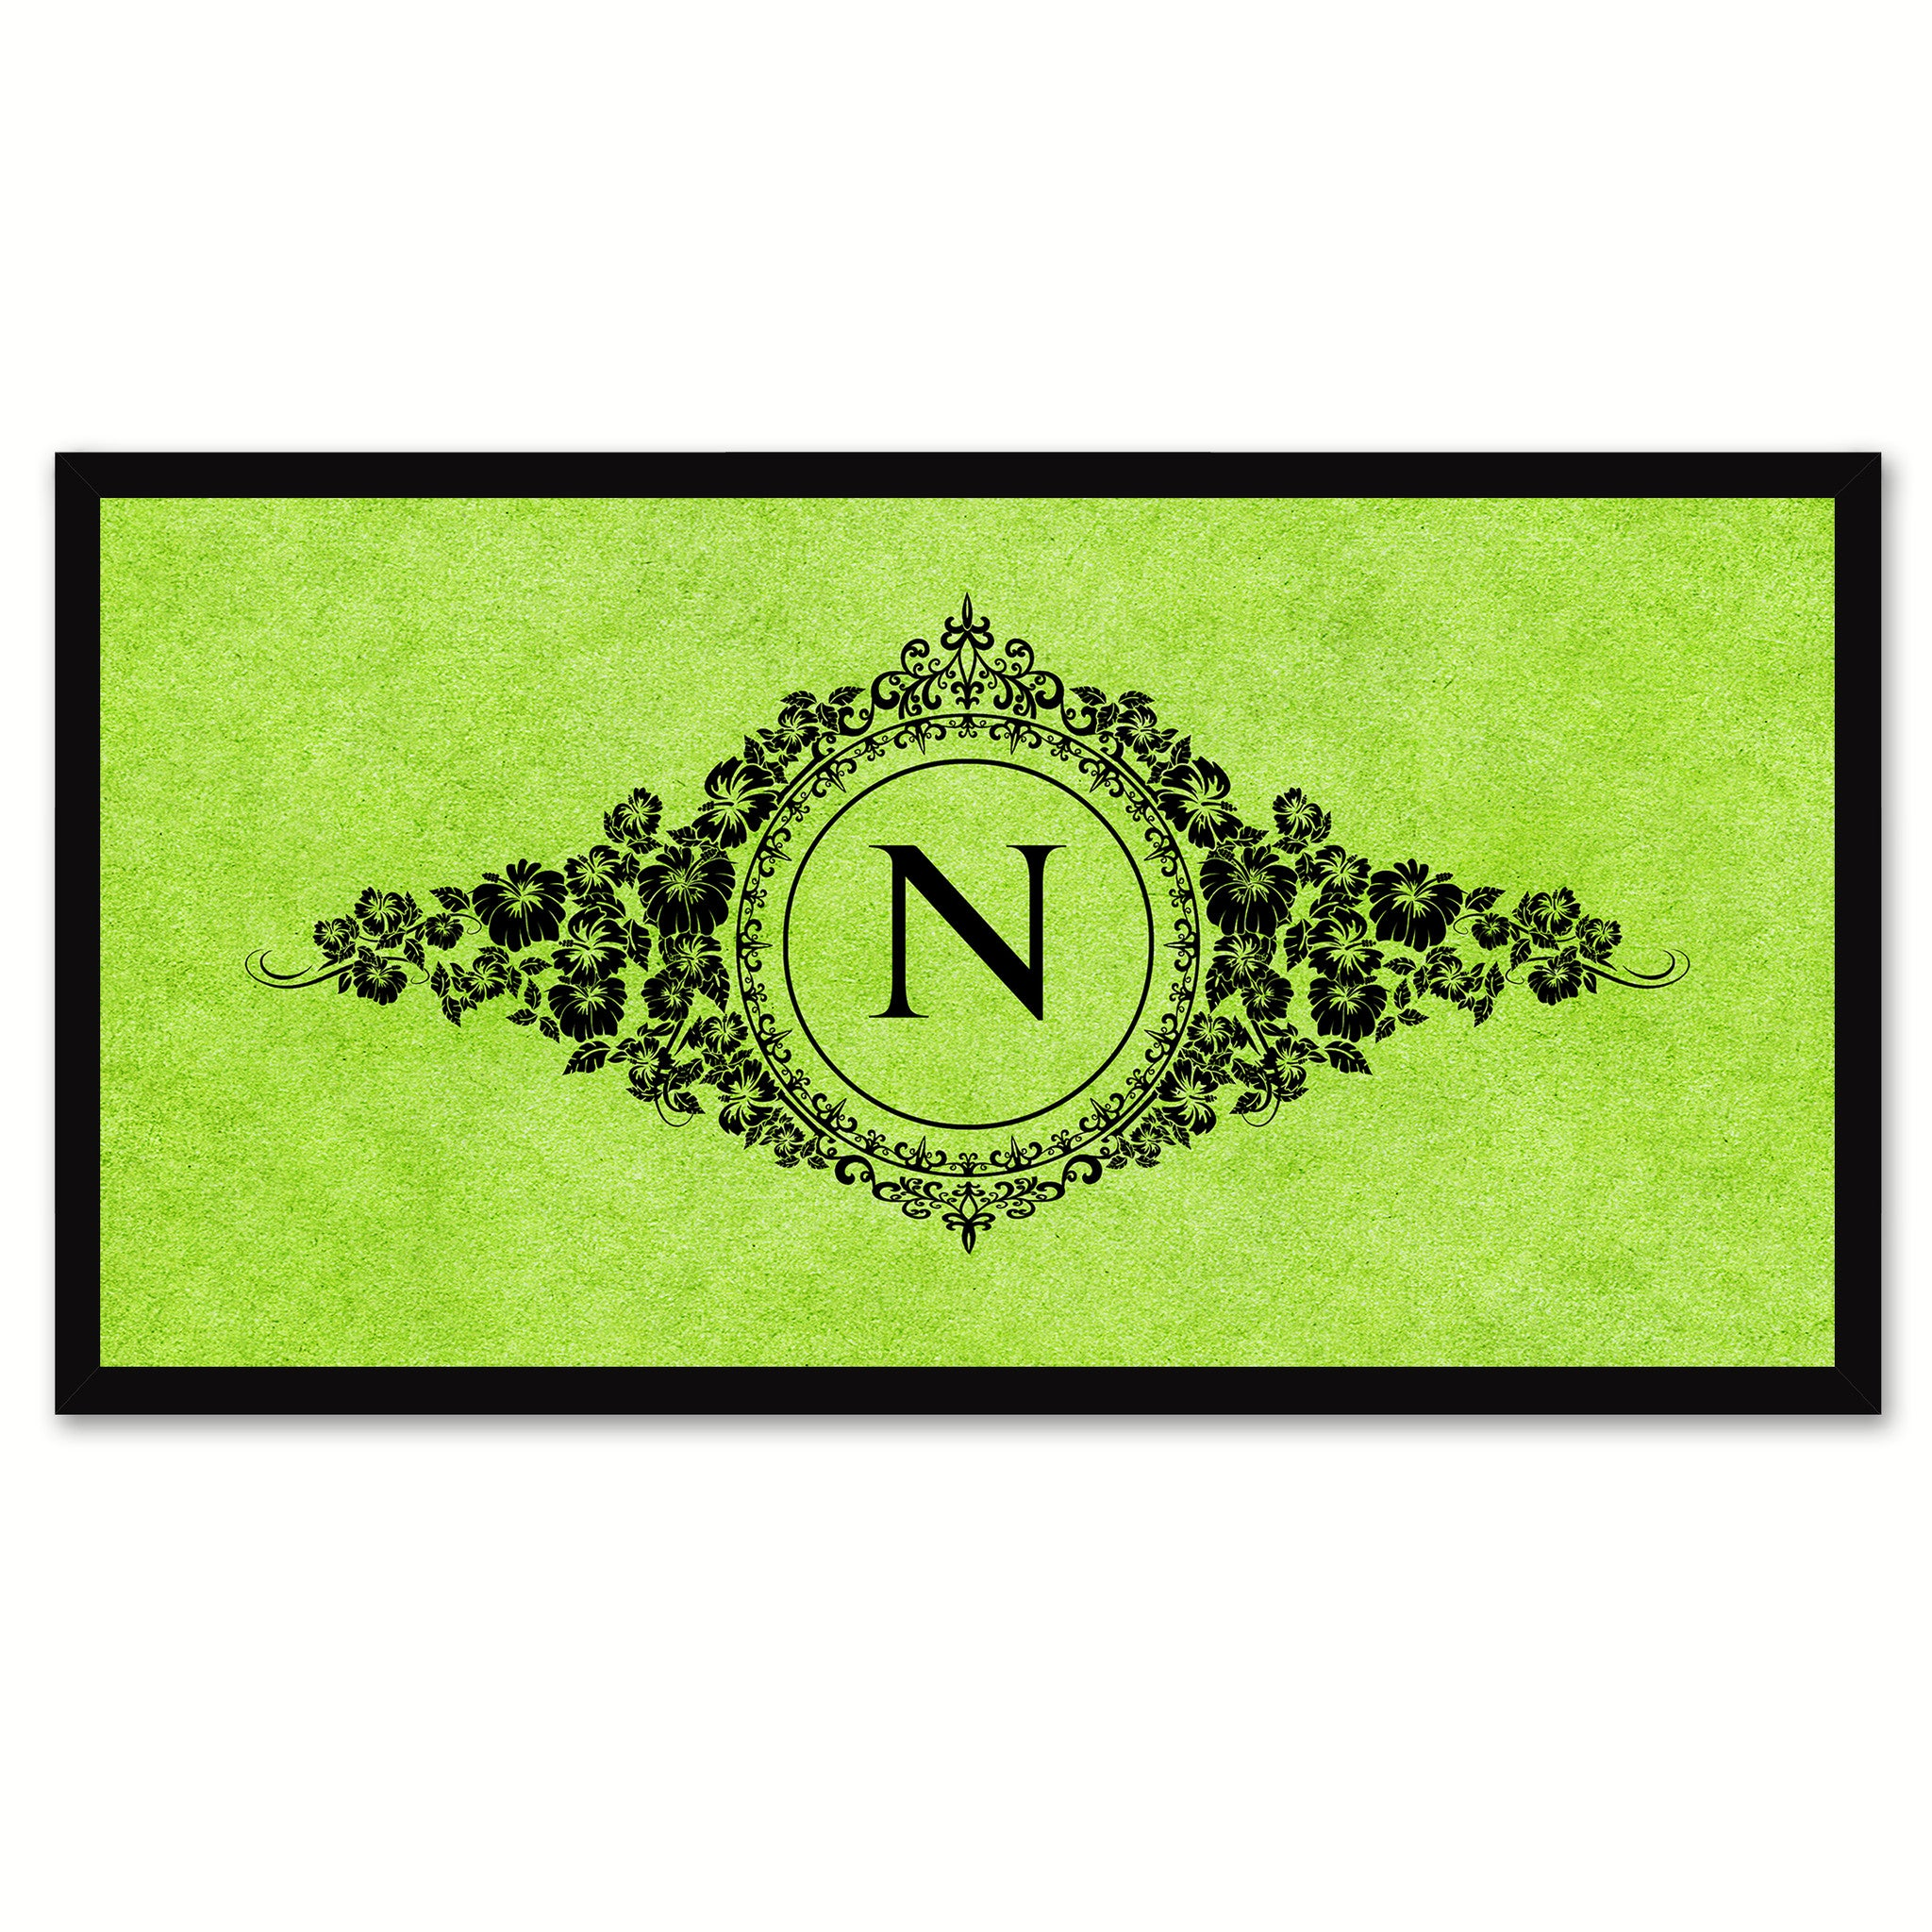 Alphabet Letter N Green Canvas Print, Black Custom Frame